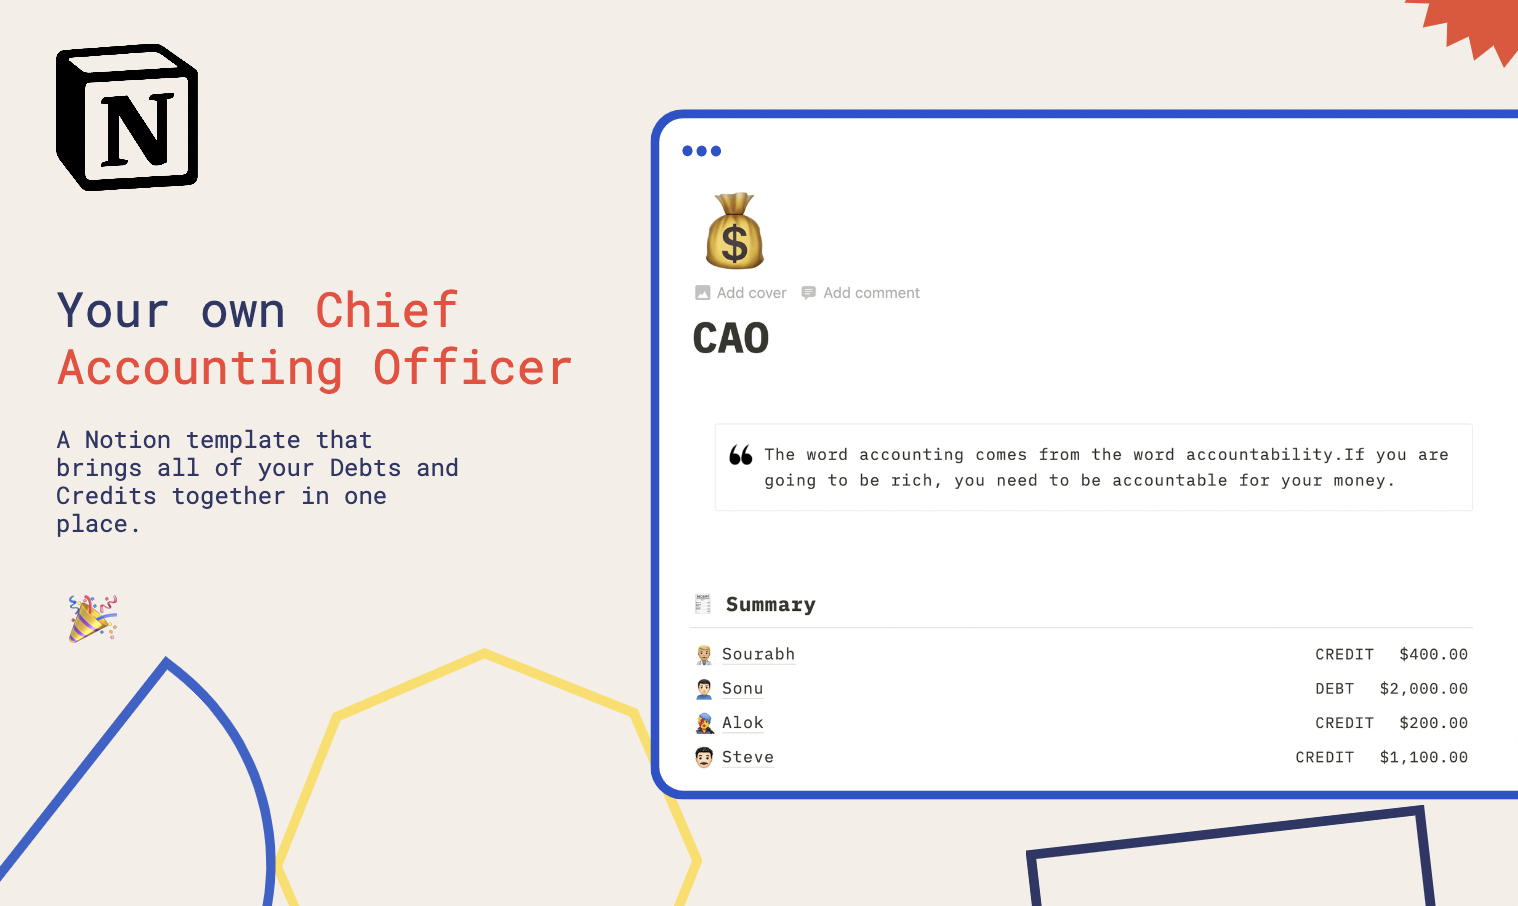 CAO-Chief Accounting Officer